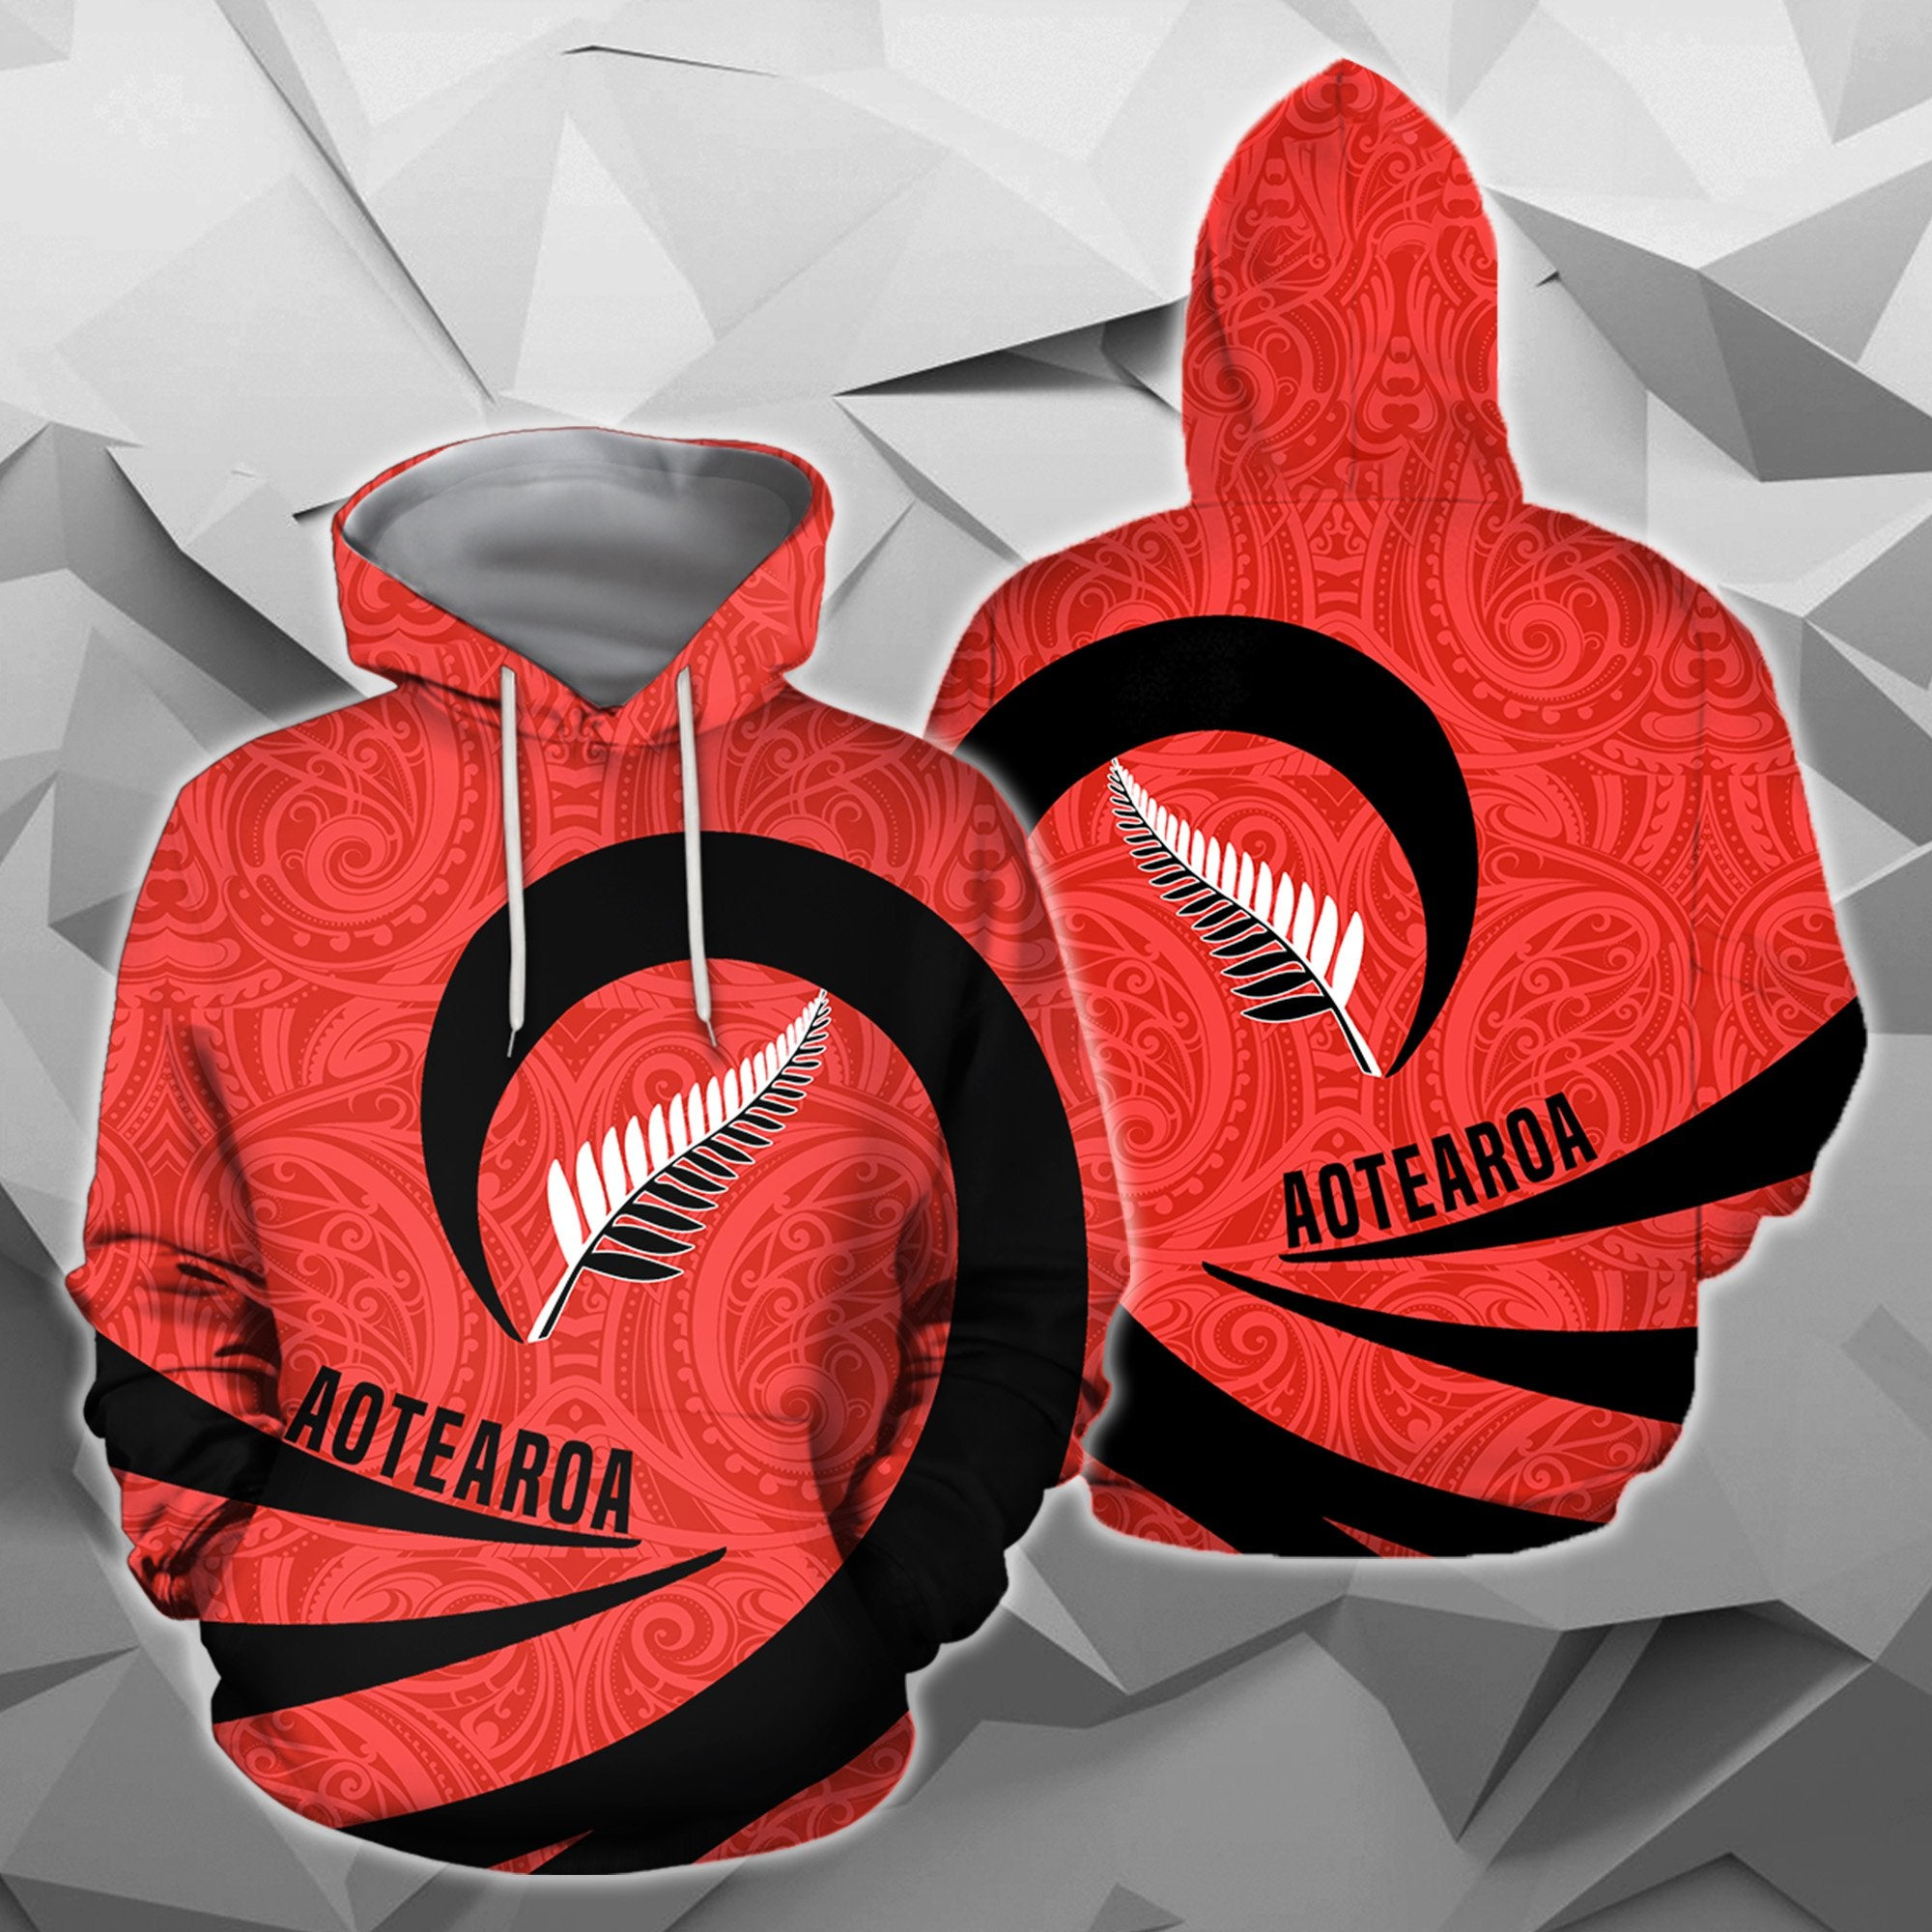 Aotearoa Hoodie Silver Fern Roll Into My Heart Zip-Up TH5 - Amaze Style™-Apparel